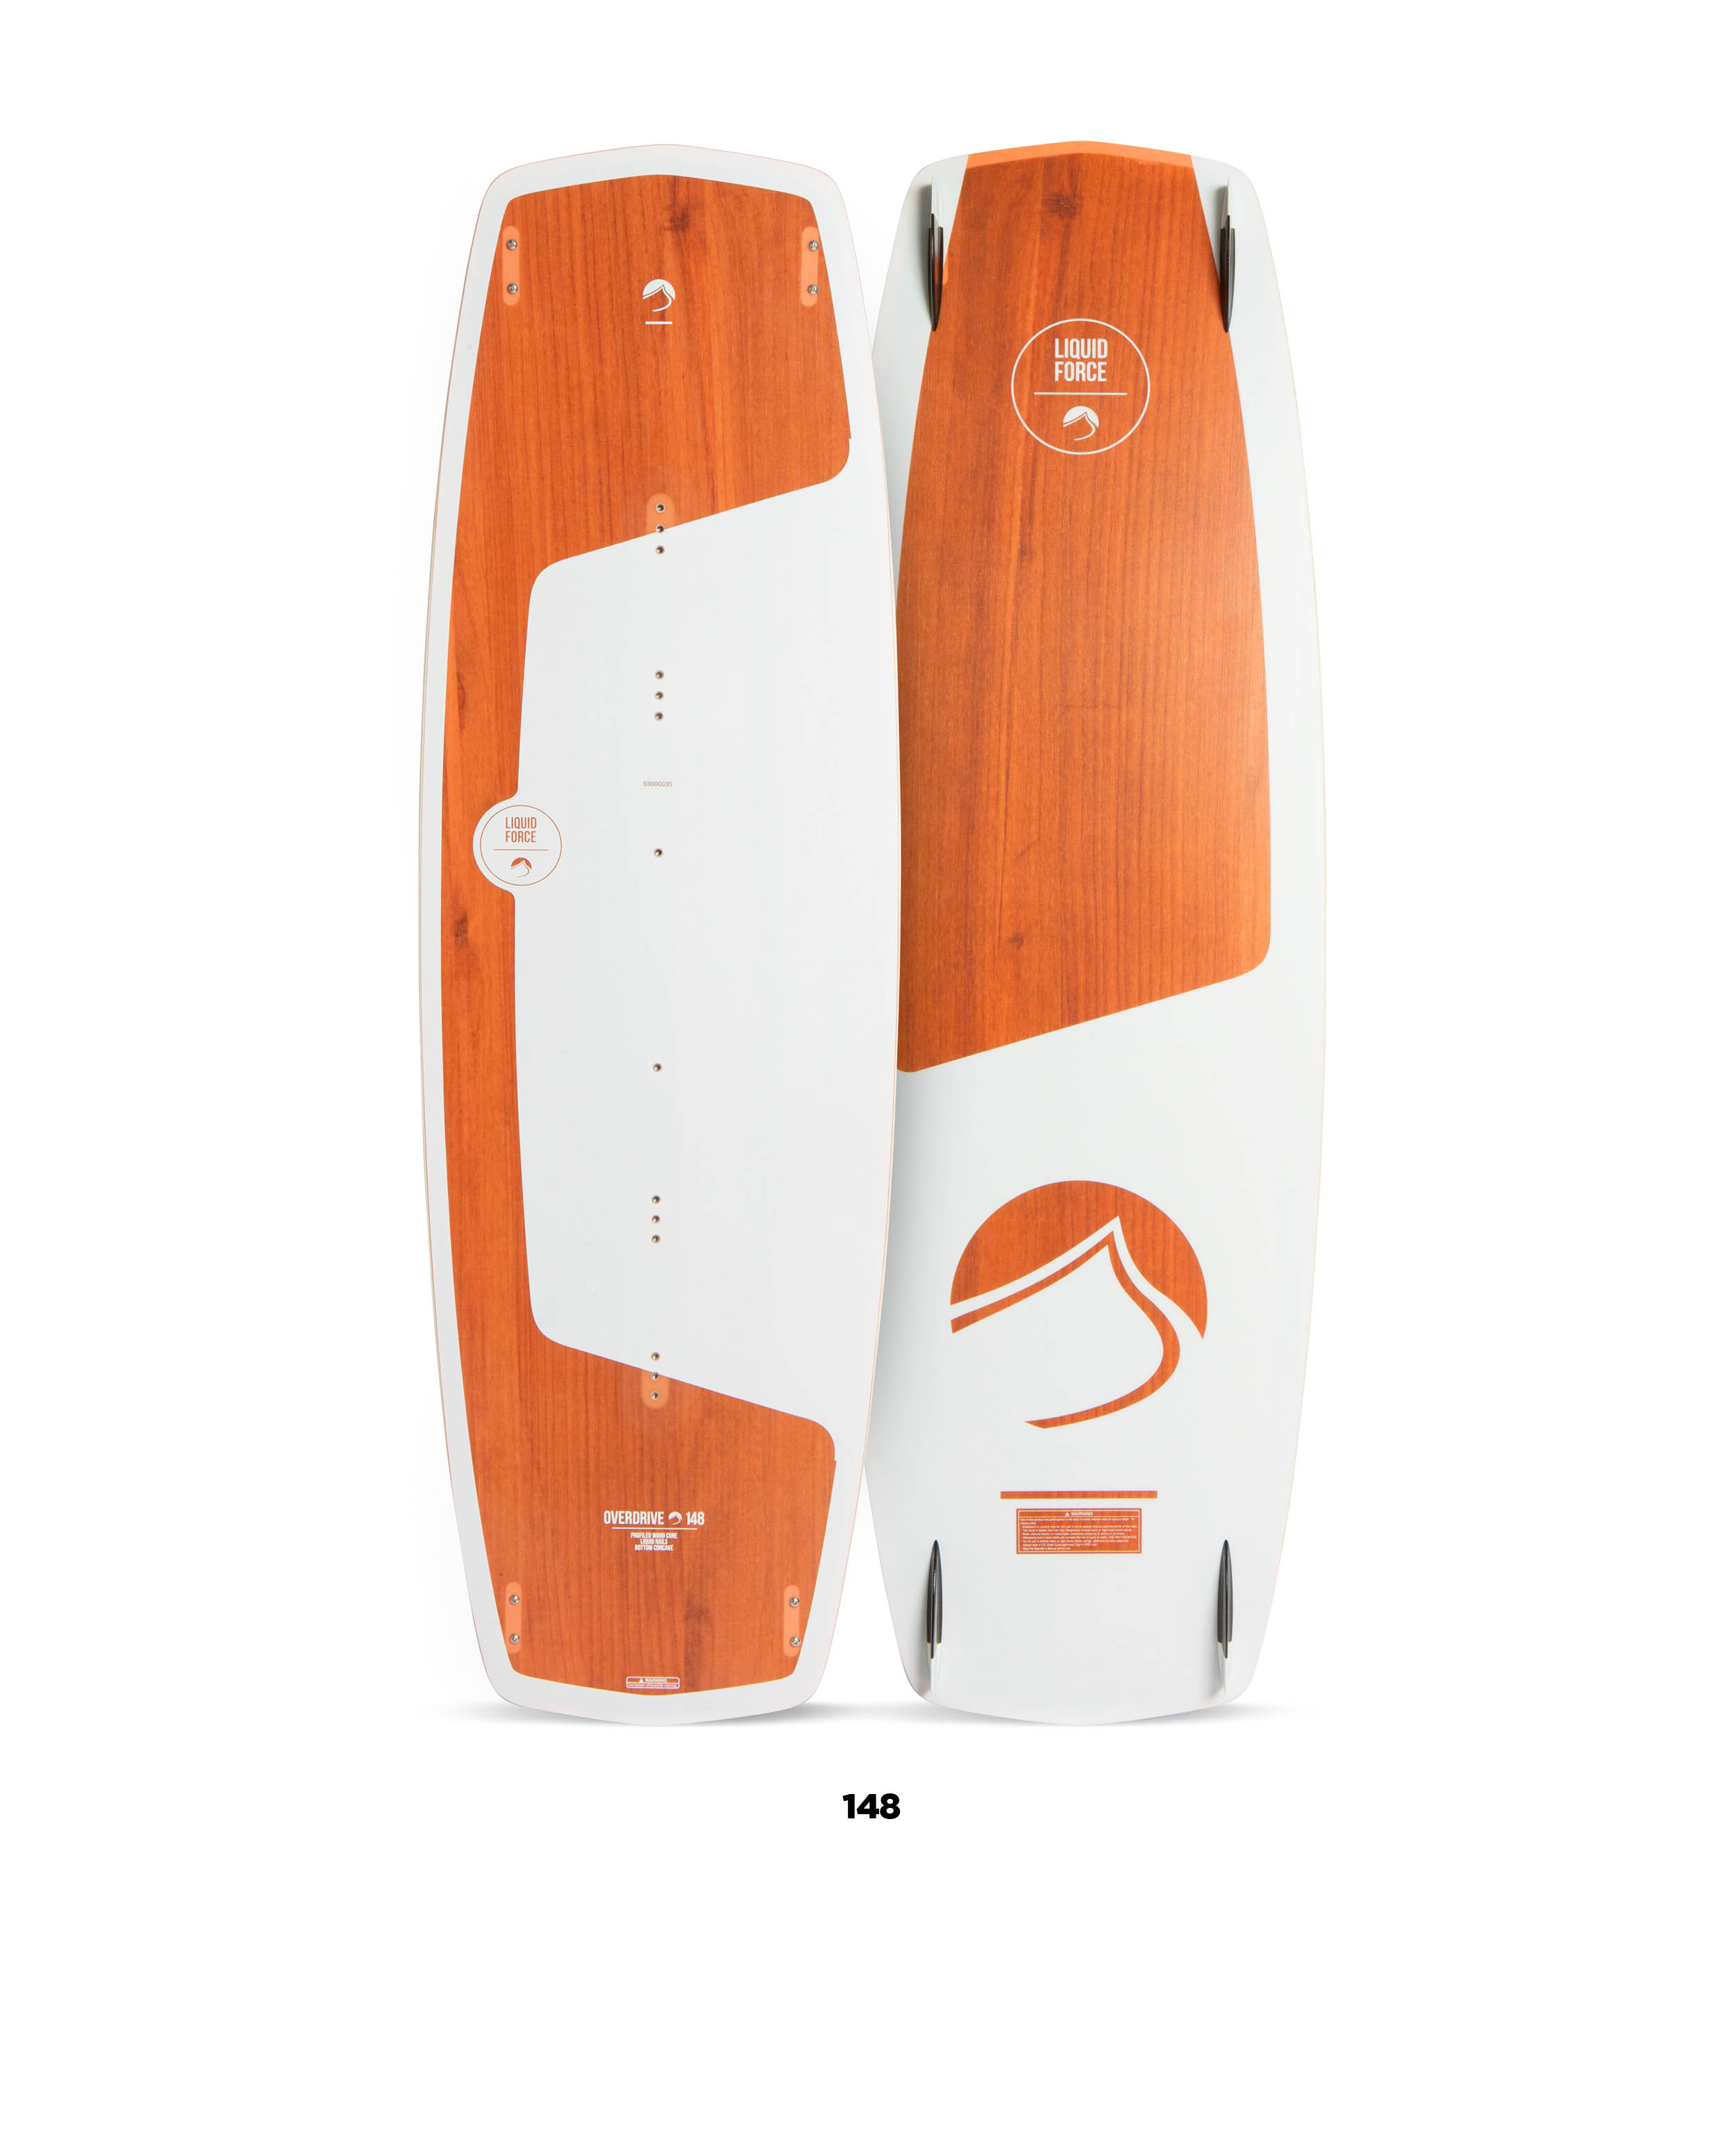 Kiteboard  LIQUID FORCE OVER DRIVE (142až148cm) freeride,freestyle,lightwind